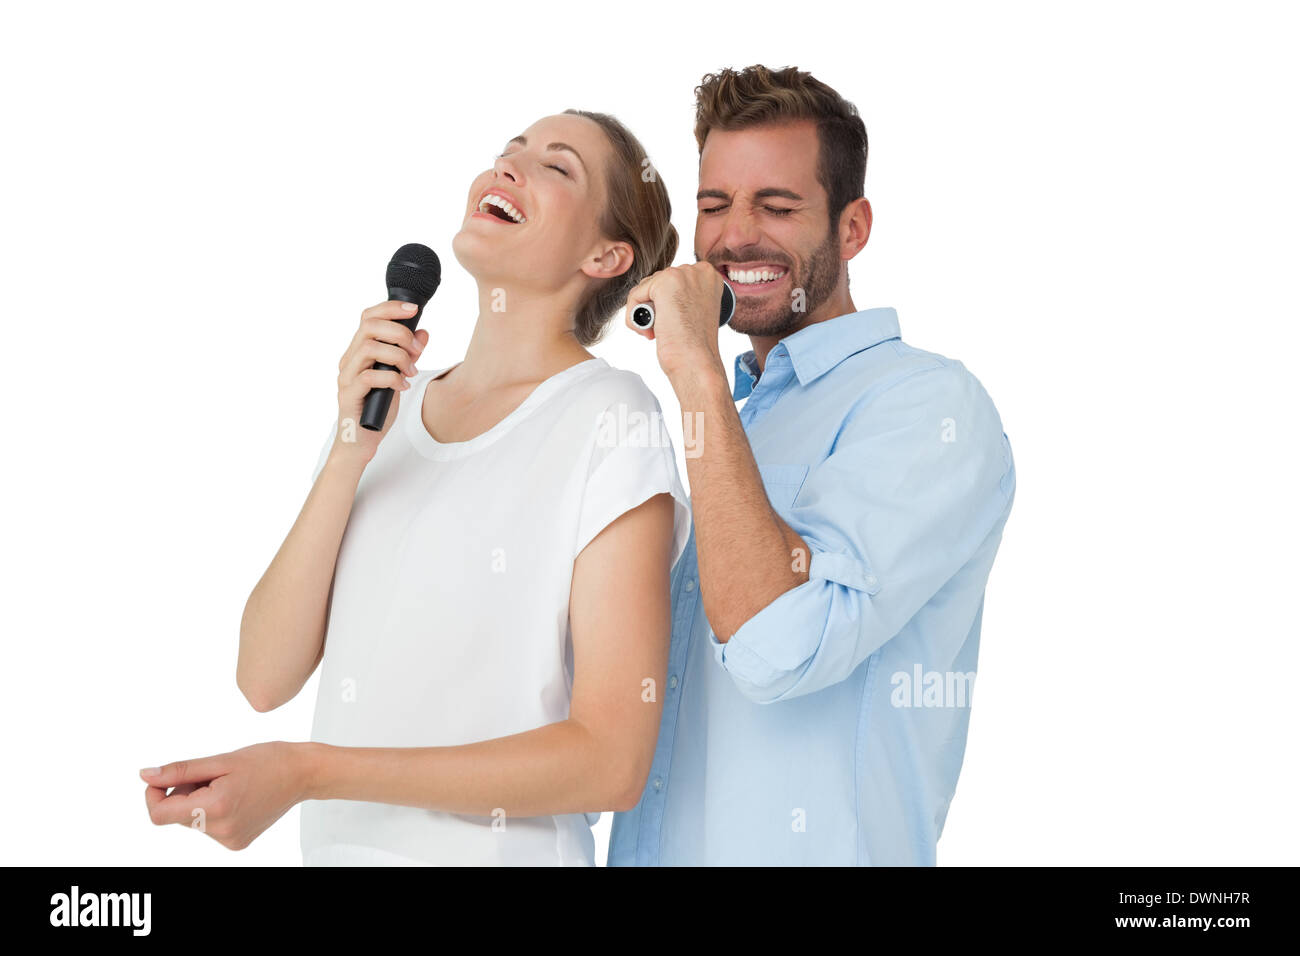 Cheerful couple singing into microphones - Stock Image